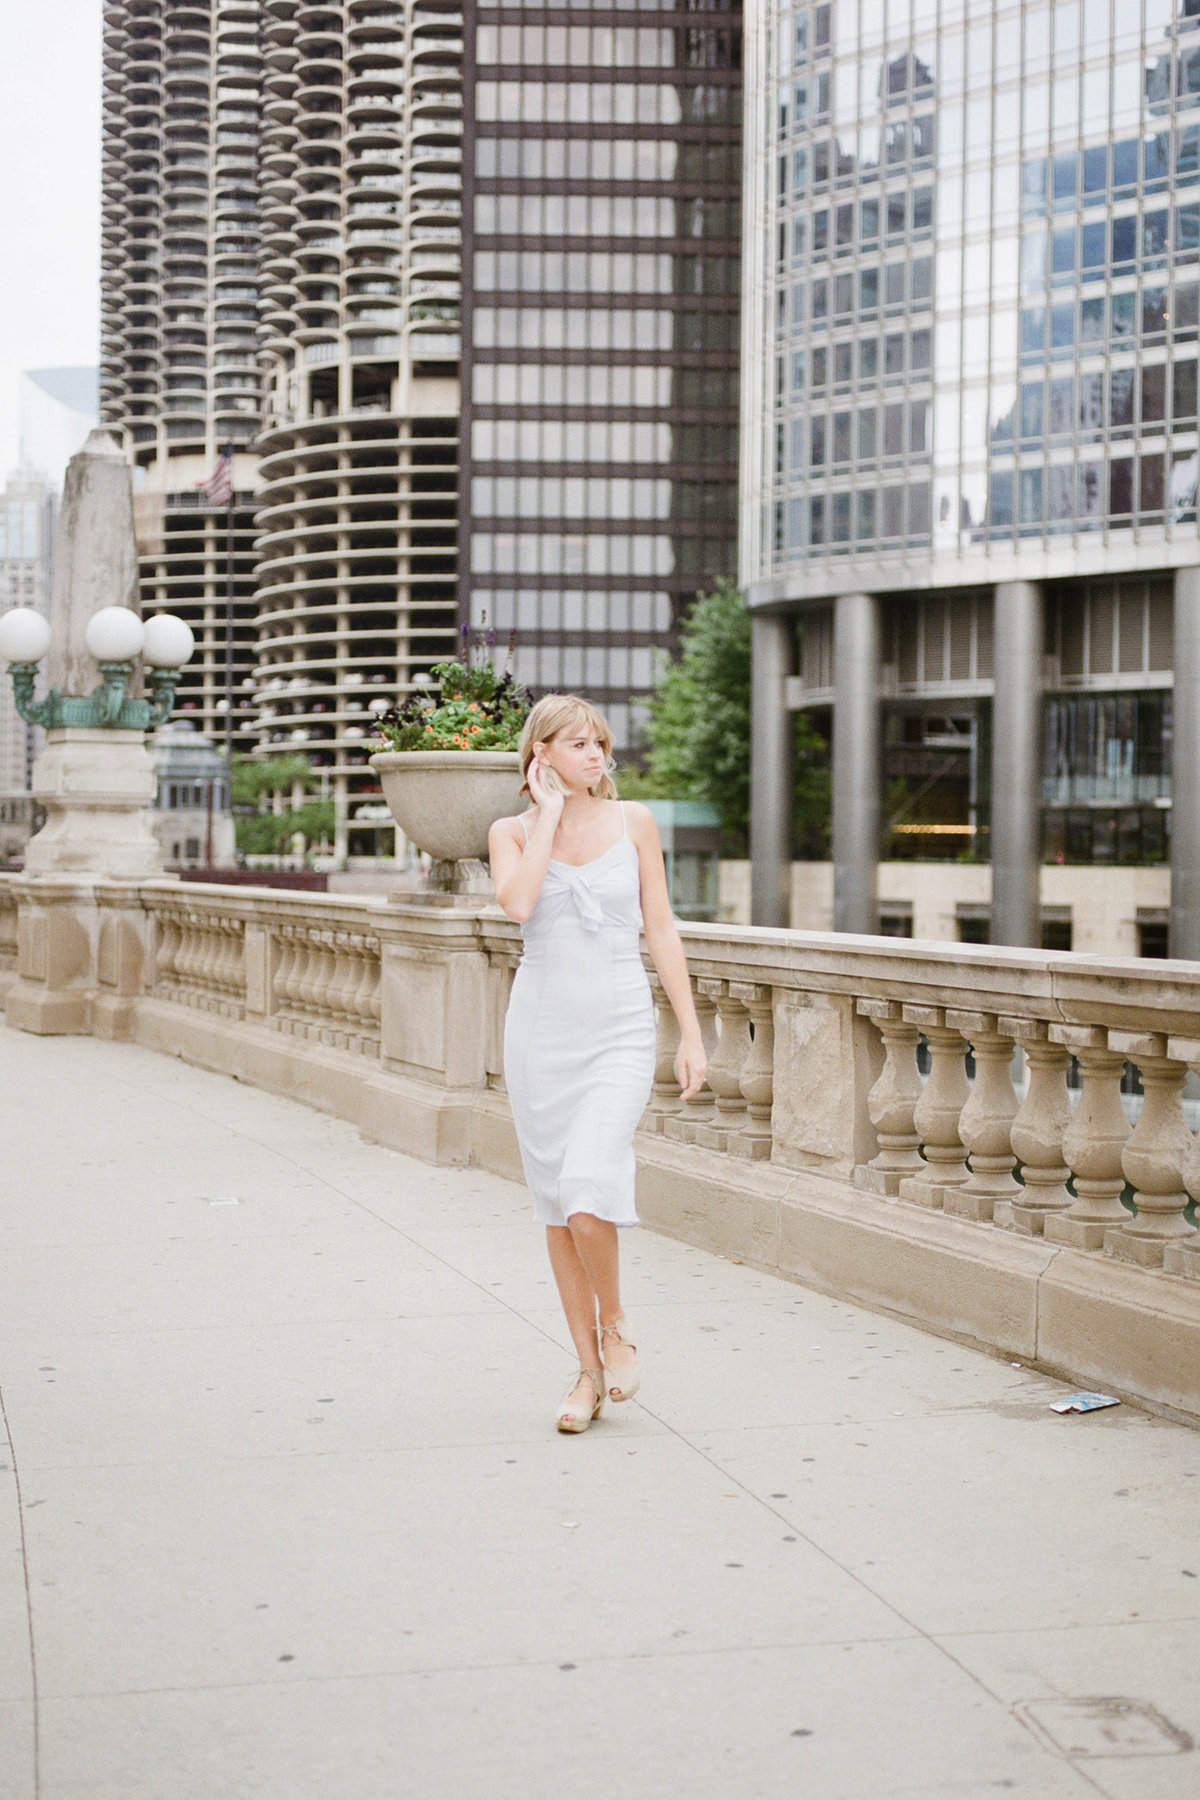 Chicago Wedding Photographer - Fine Art Film Photographer - Sarah Sunstrom - Sam + Morgan - Engagement Session - 33